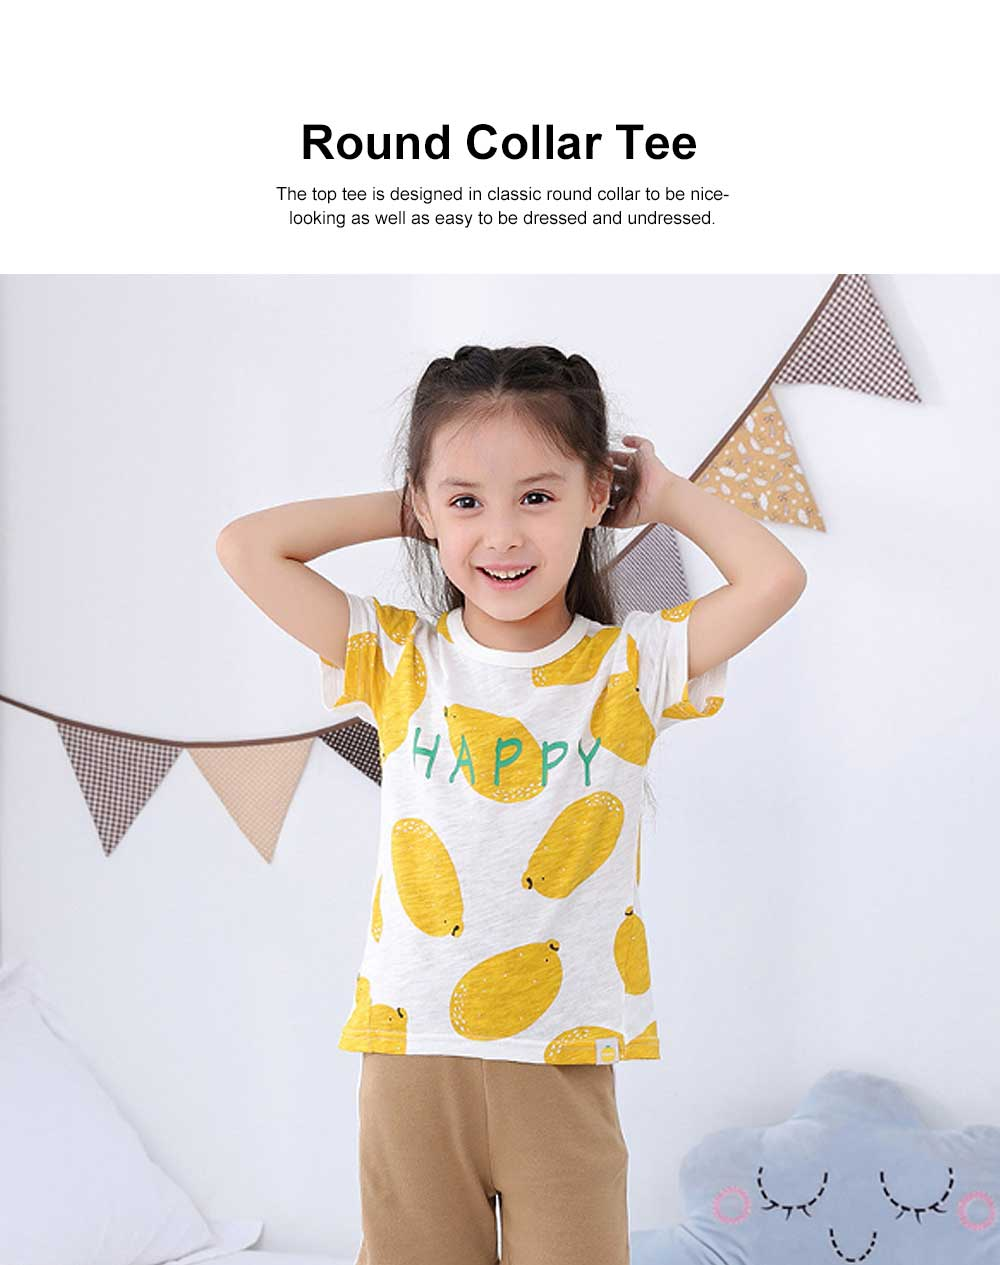 Pure Cotton Cartoon Short Sleeve T-shirt for Unisex Babies Wear in Summer Korean Style Waling Dress for Children Short Pants Children Wear 2